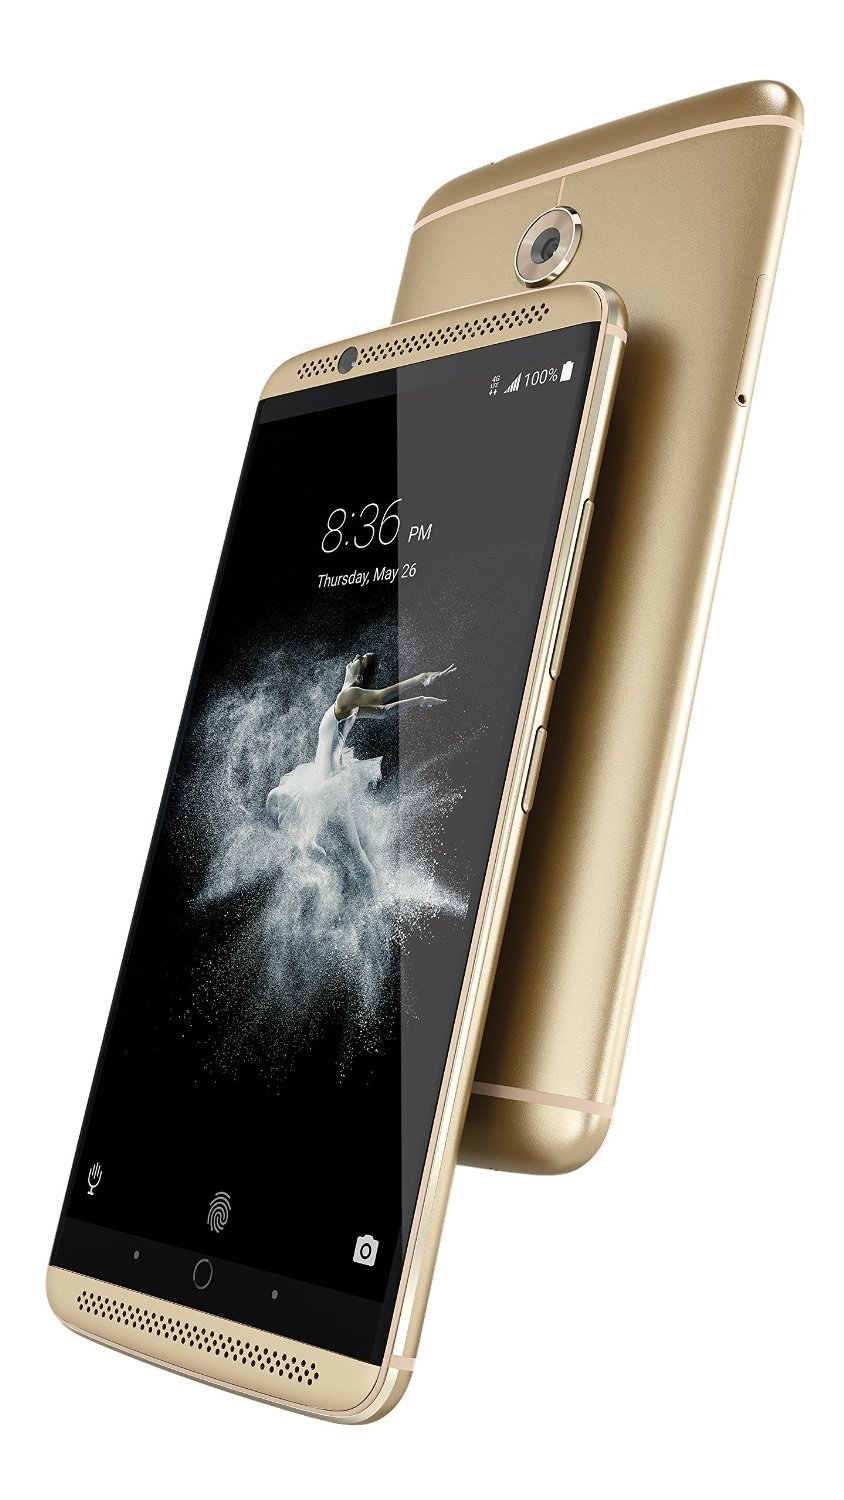 Rogers zte axon 2gb content that plays